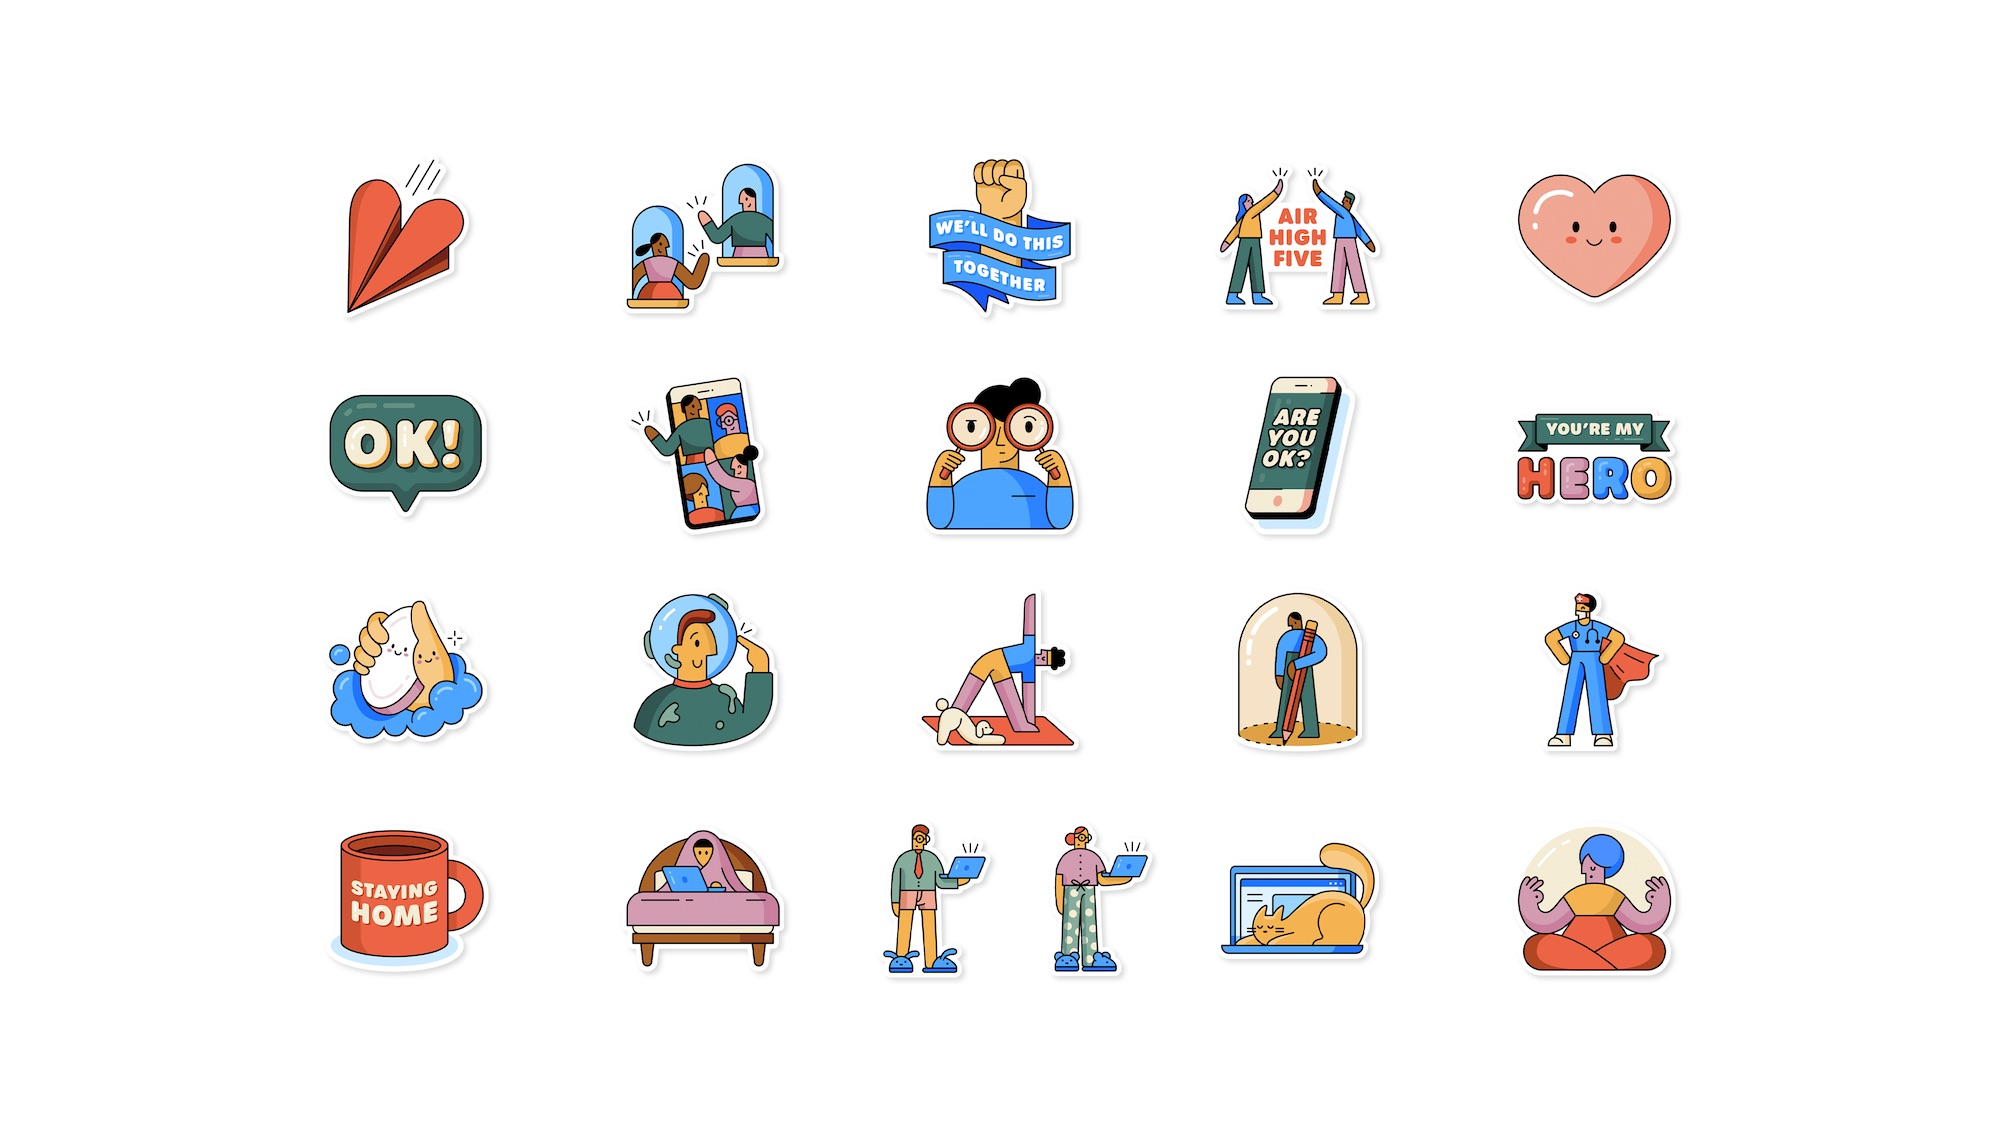 WhatsApp launches stickers to express yourself during COVID-19